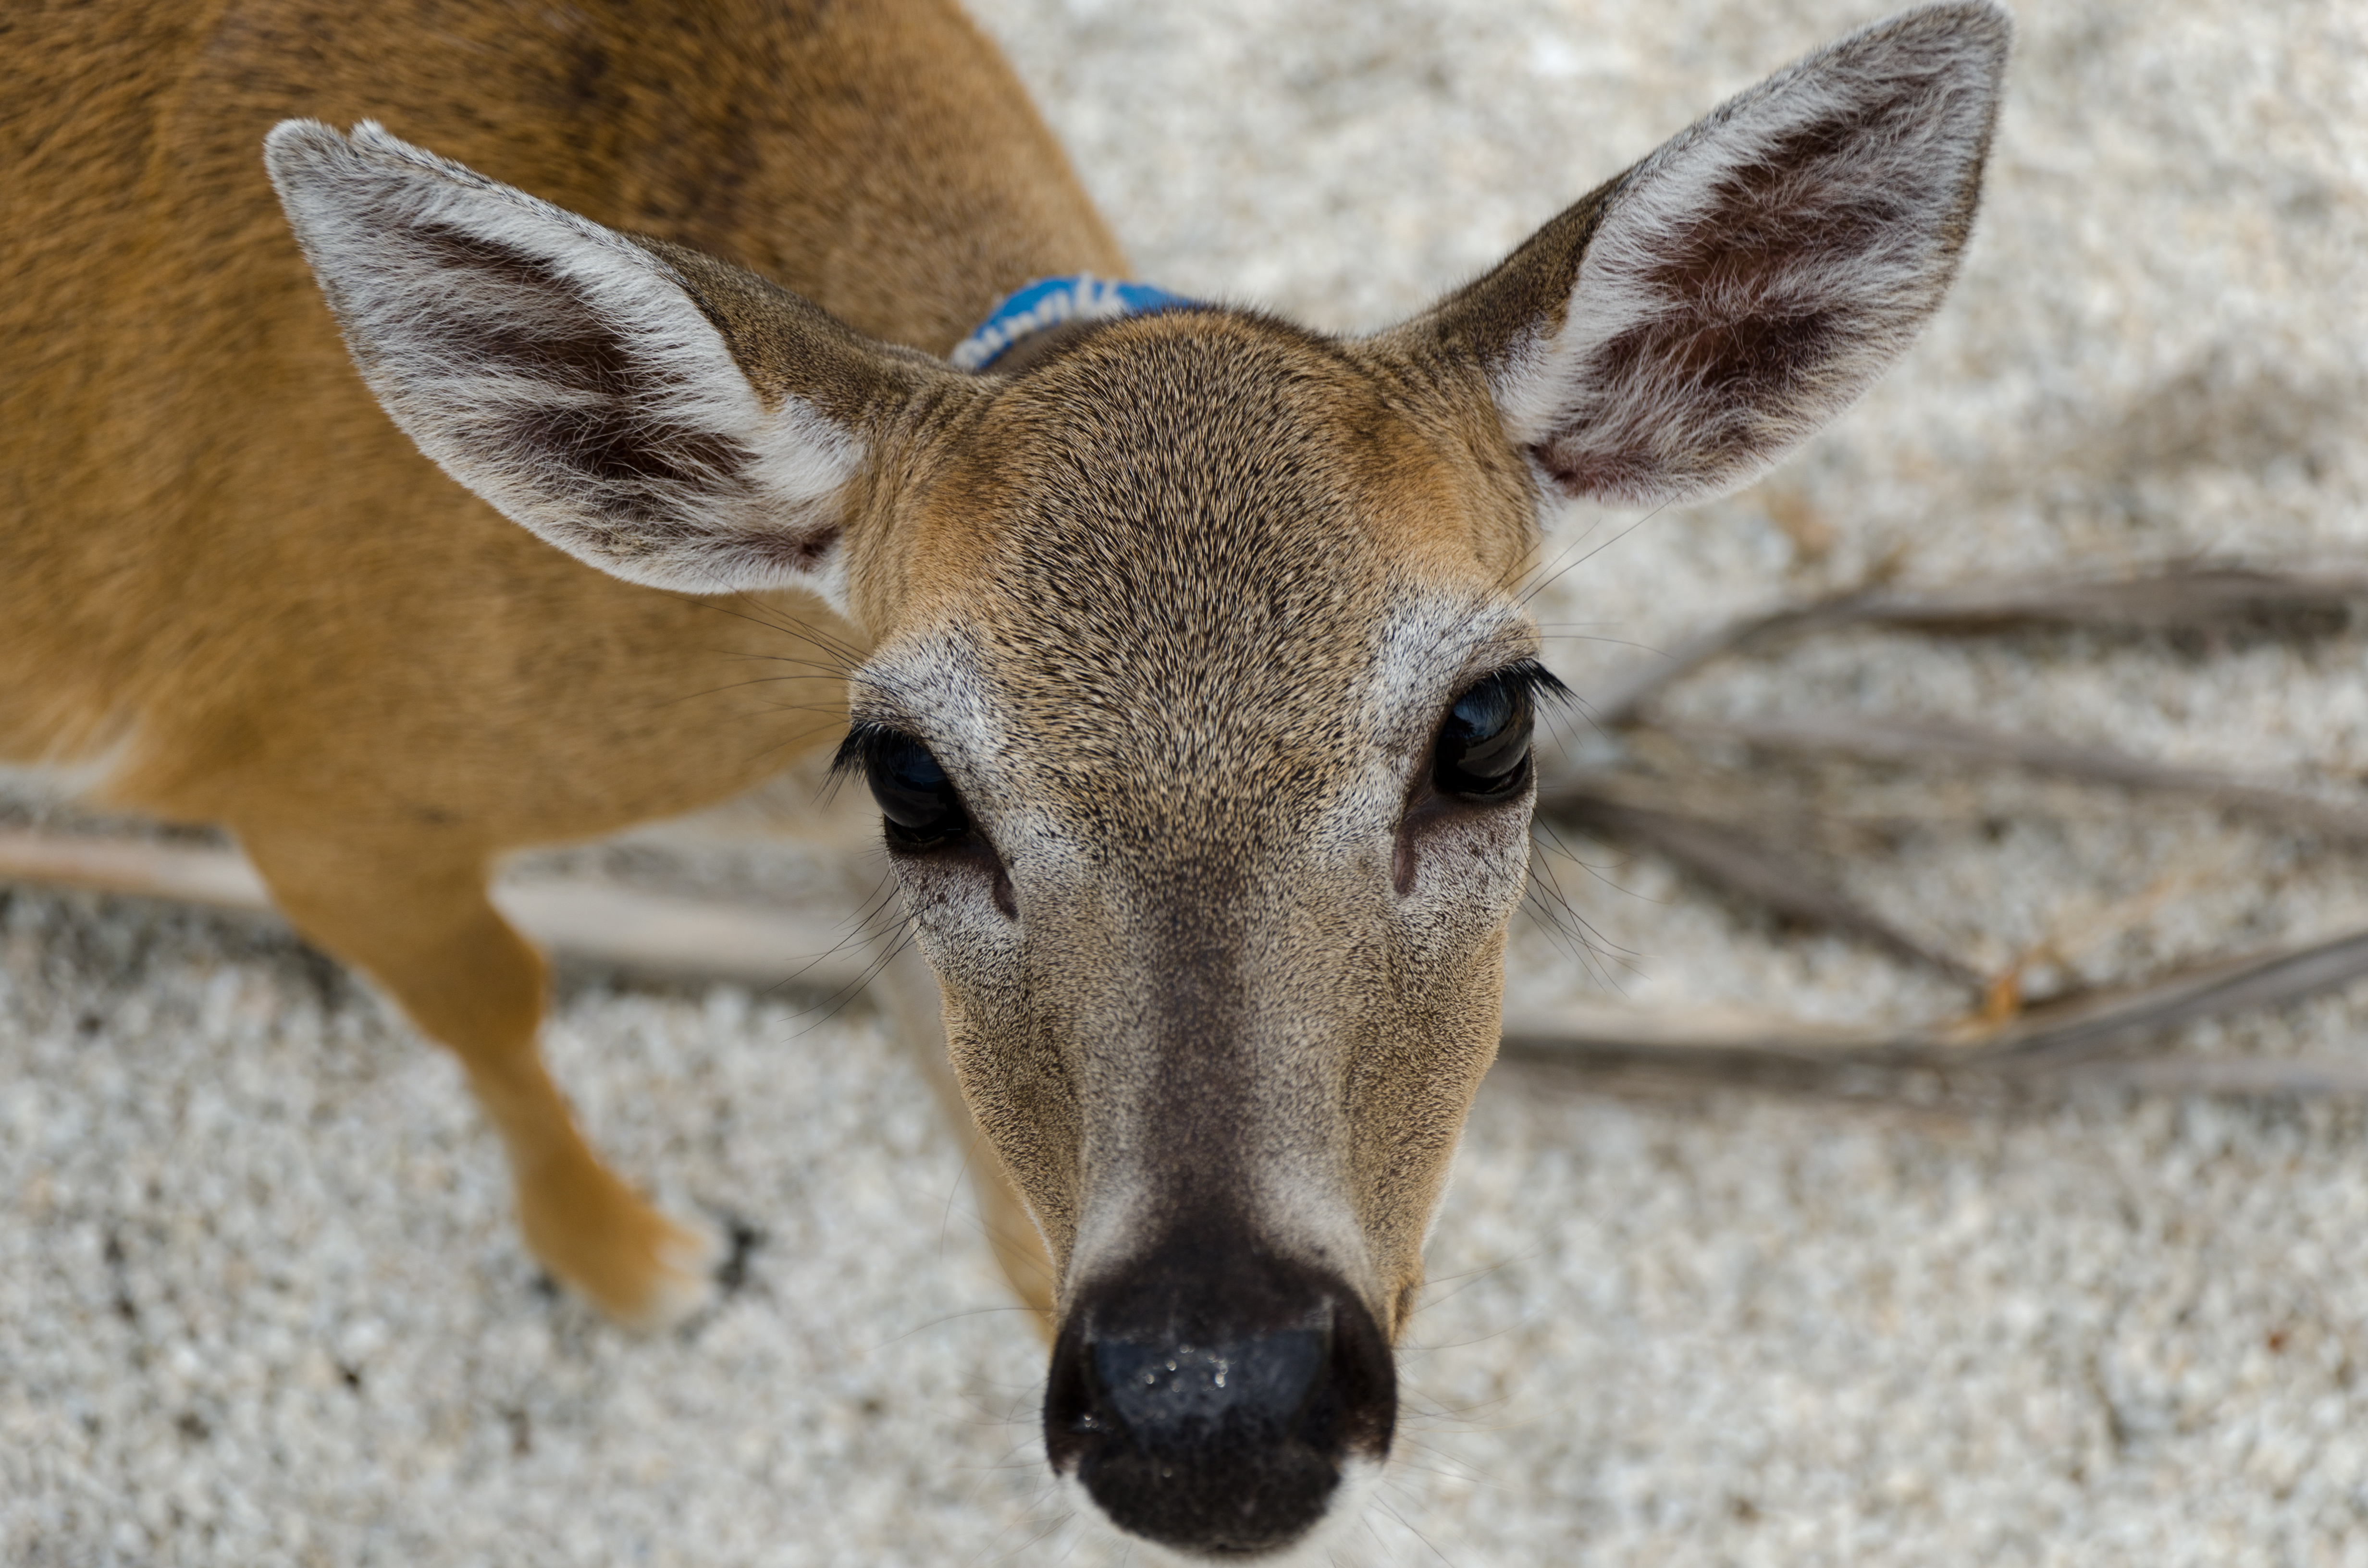 File:Close-Up of Key Deer.jpg - Wikimedia Commons